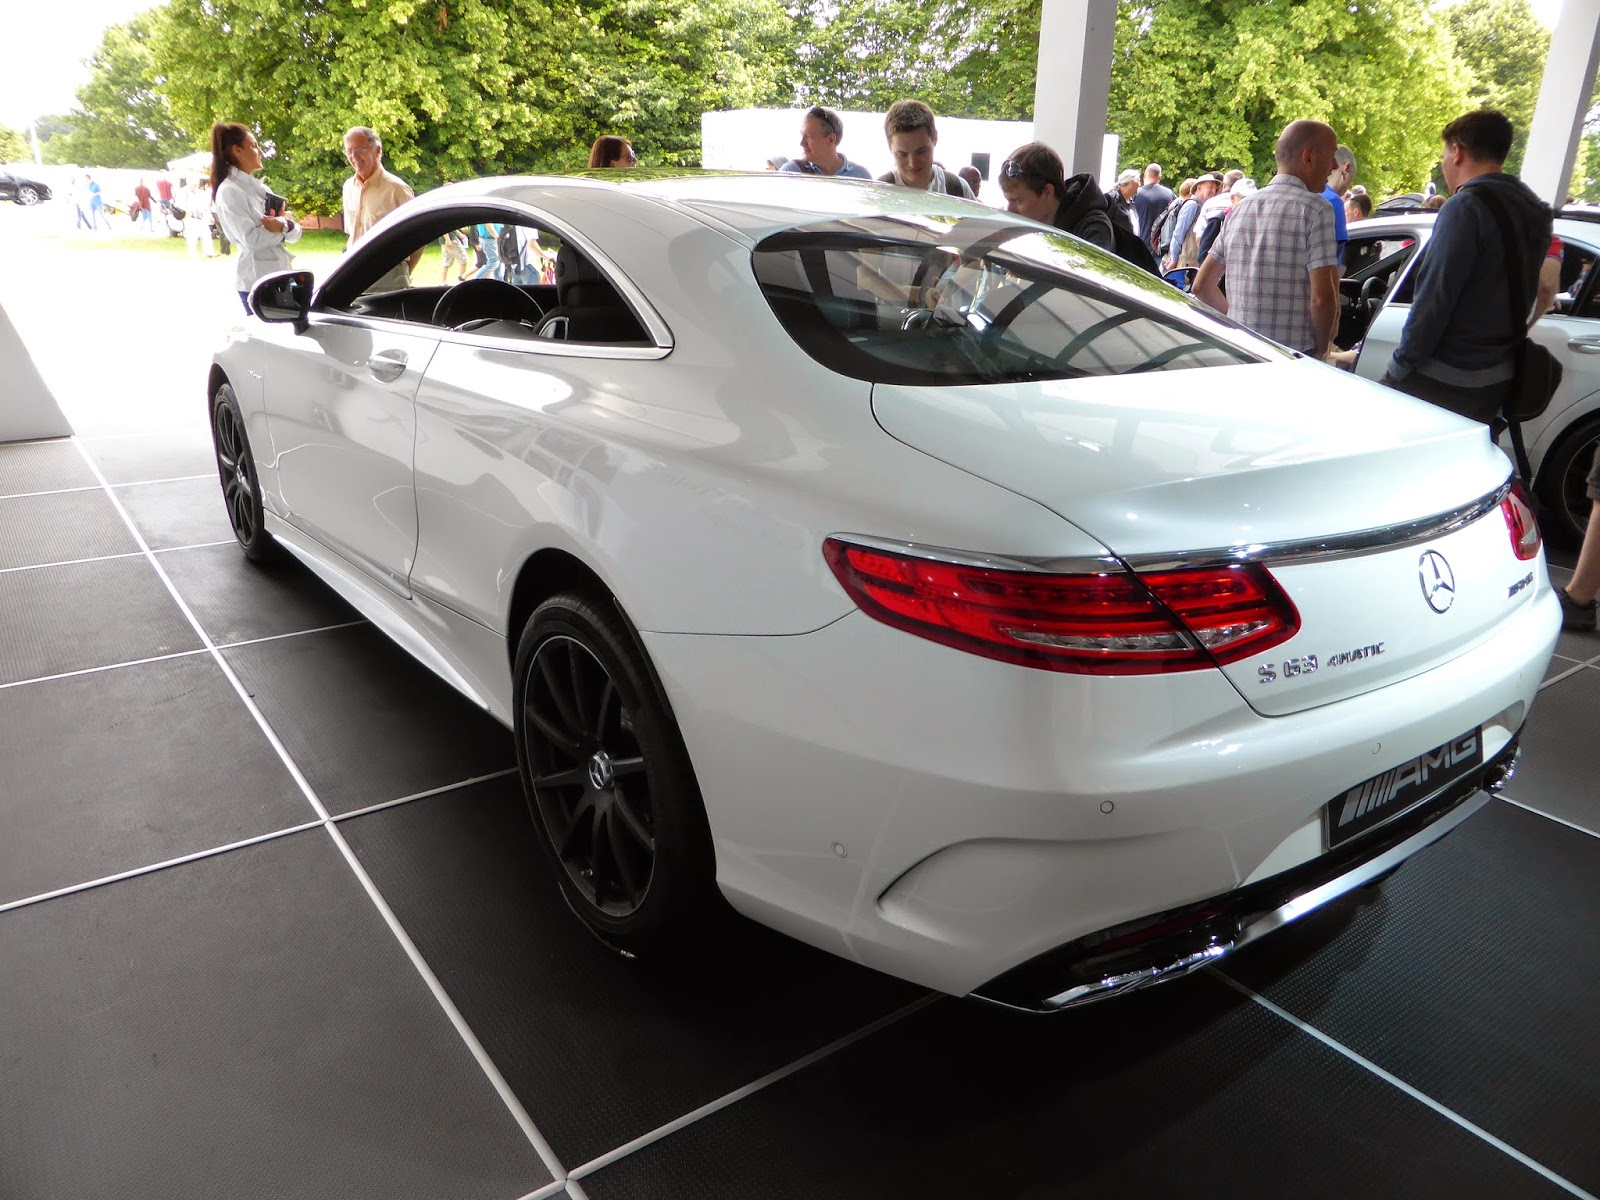 The Mercedes S Coupe looks best from the rear